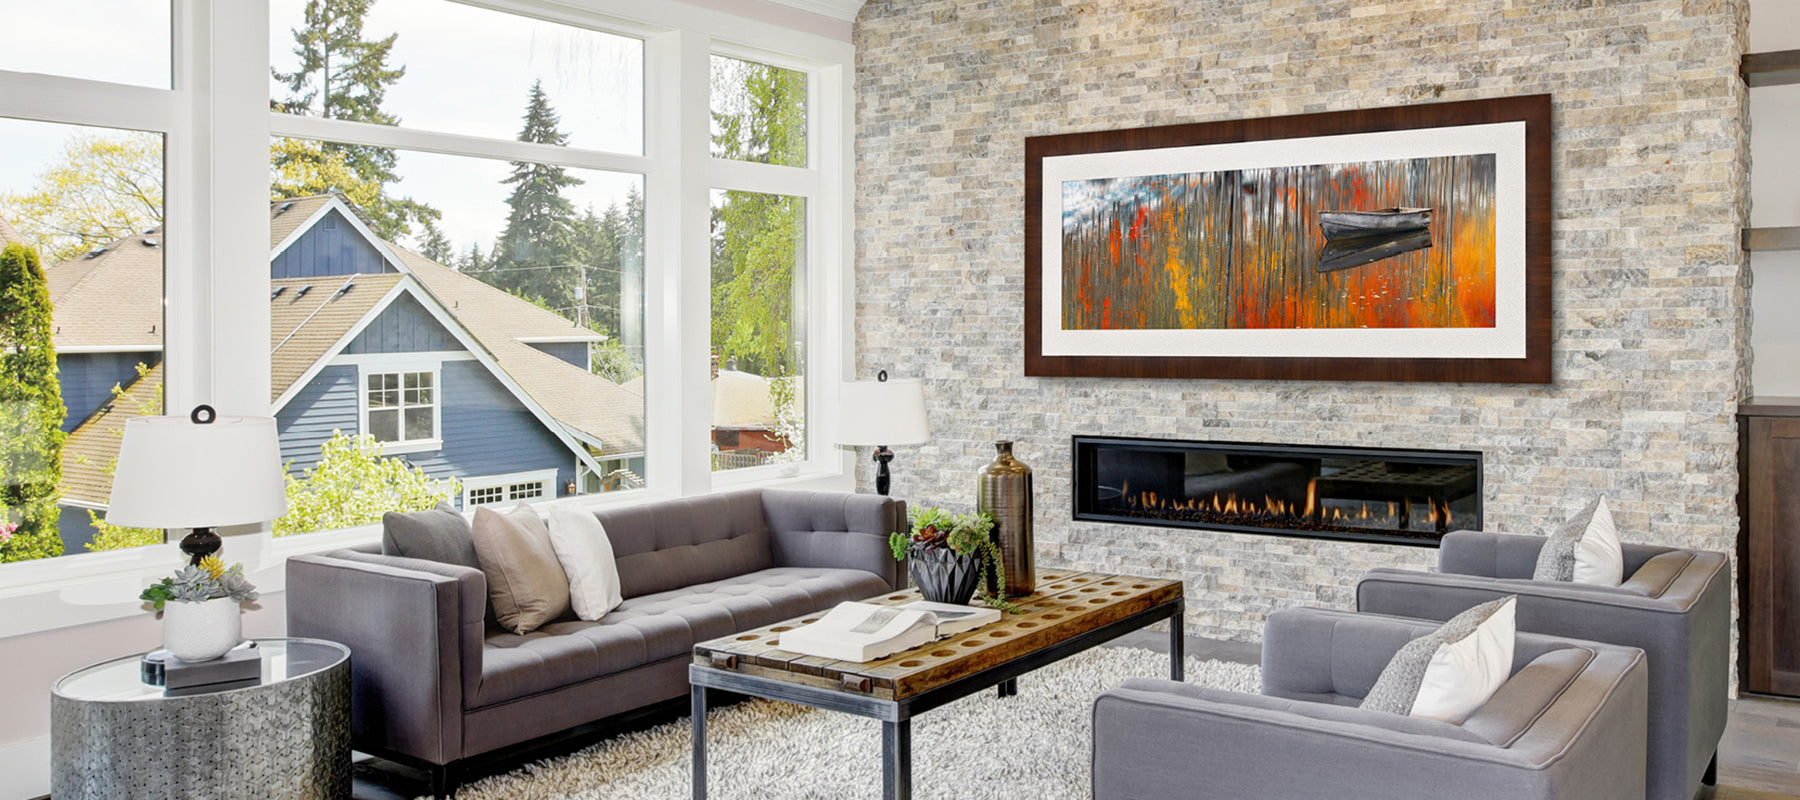 Modern living room with light gray fireplace featuring a framed photograph by Peter Lik of a rowboat on a lake in Aspen